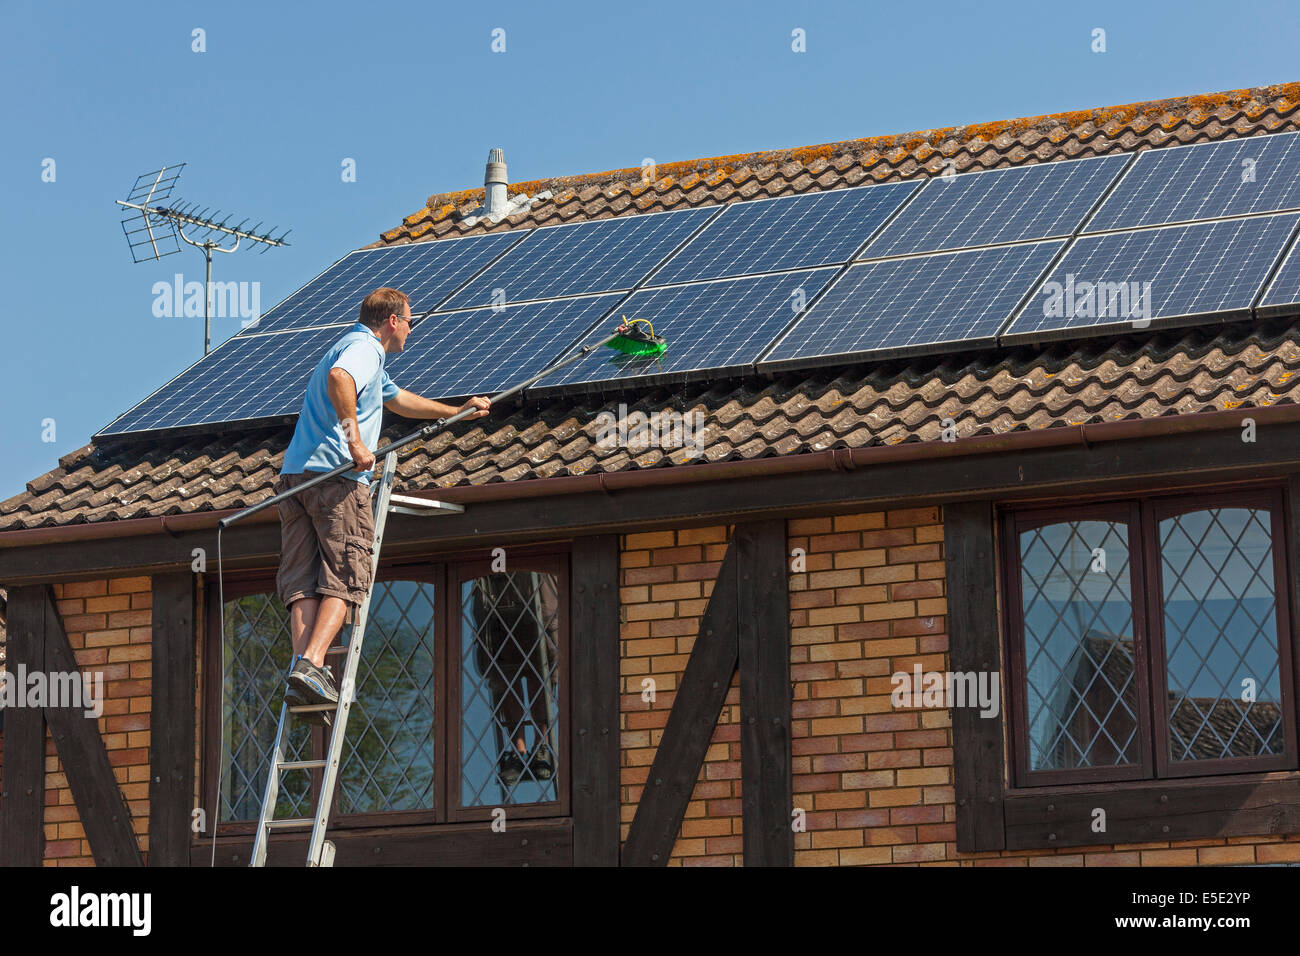 Cleaning accumulated dirt, grime and bird droppings from rooftop Photovoltaic (PV) solar panels. JMH6246 - Stock Image